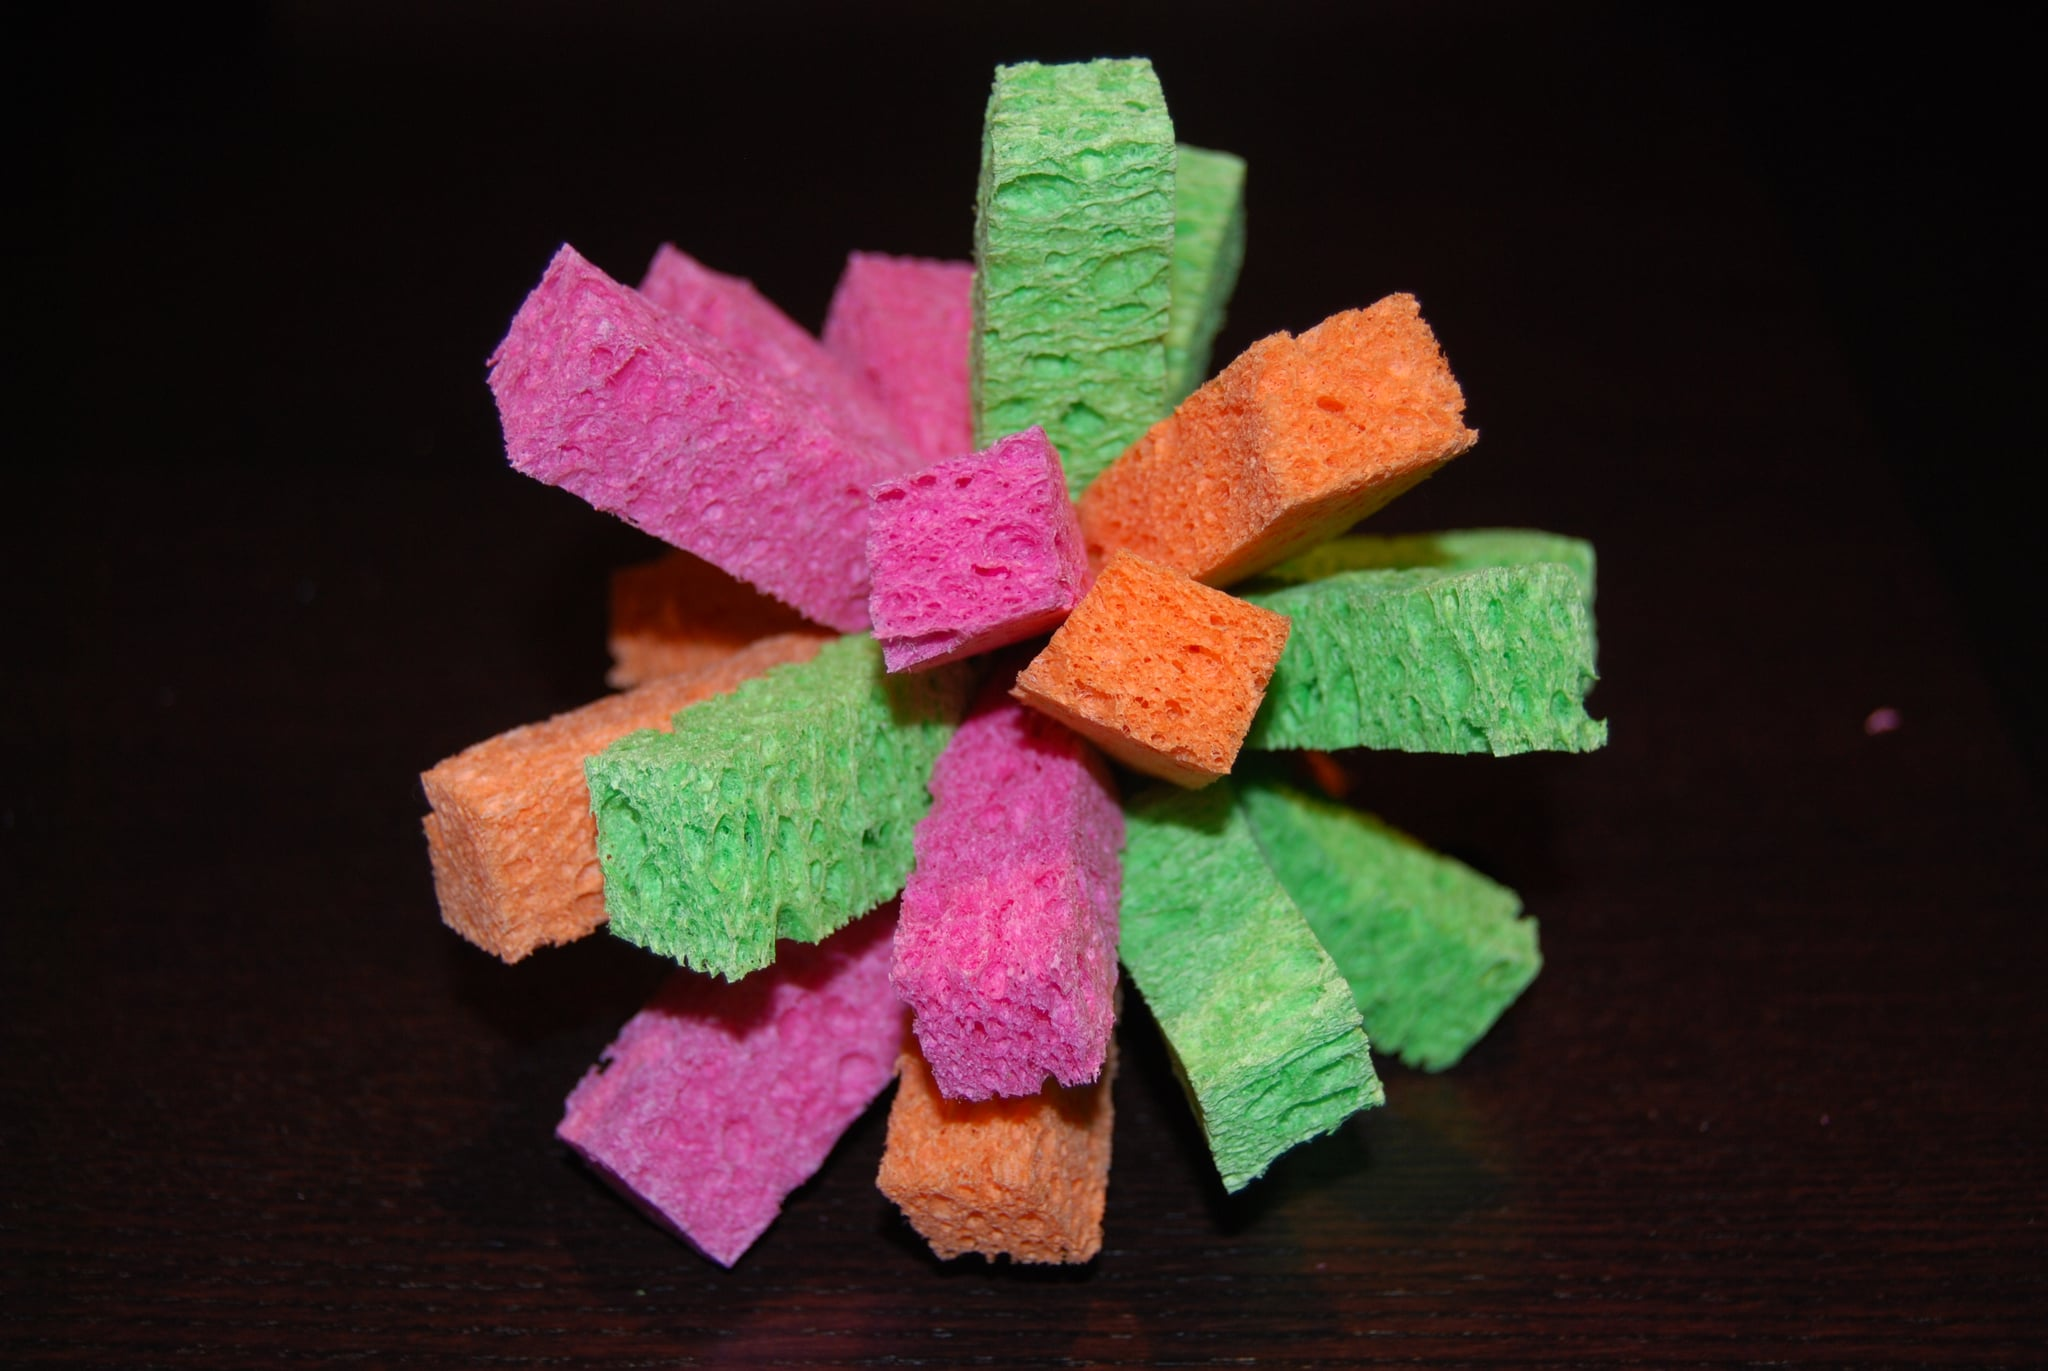 Added four orange pieces to eight pink and green sponge pieces to create a fuller sponge ball.